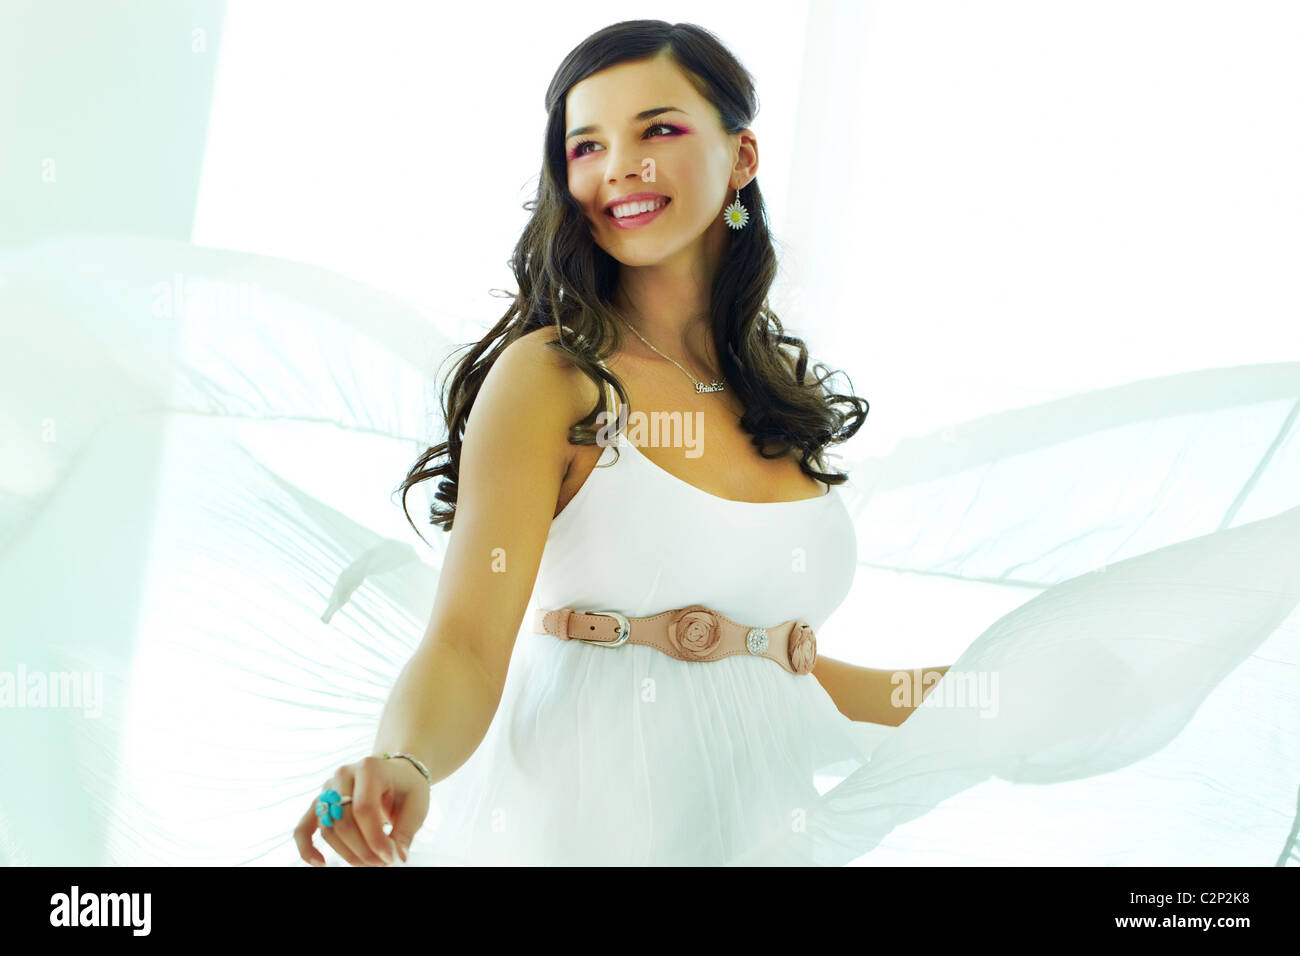 Happy woman in white dress whirling - Stock Image